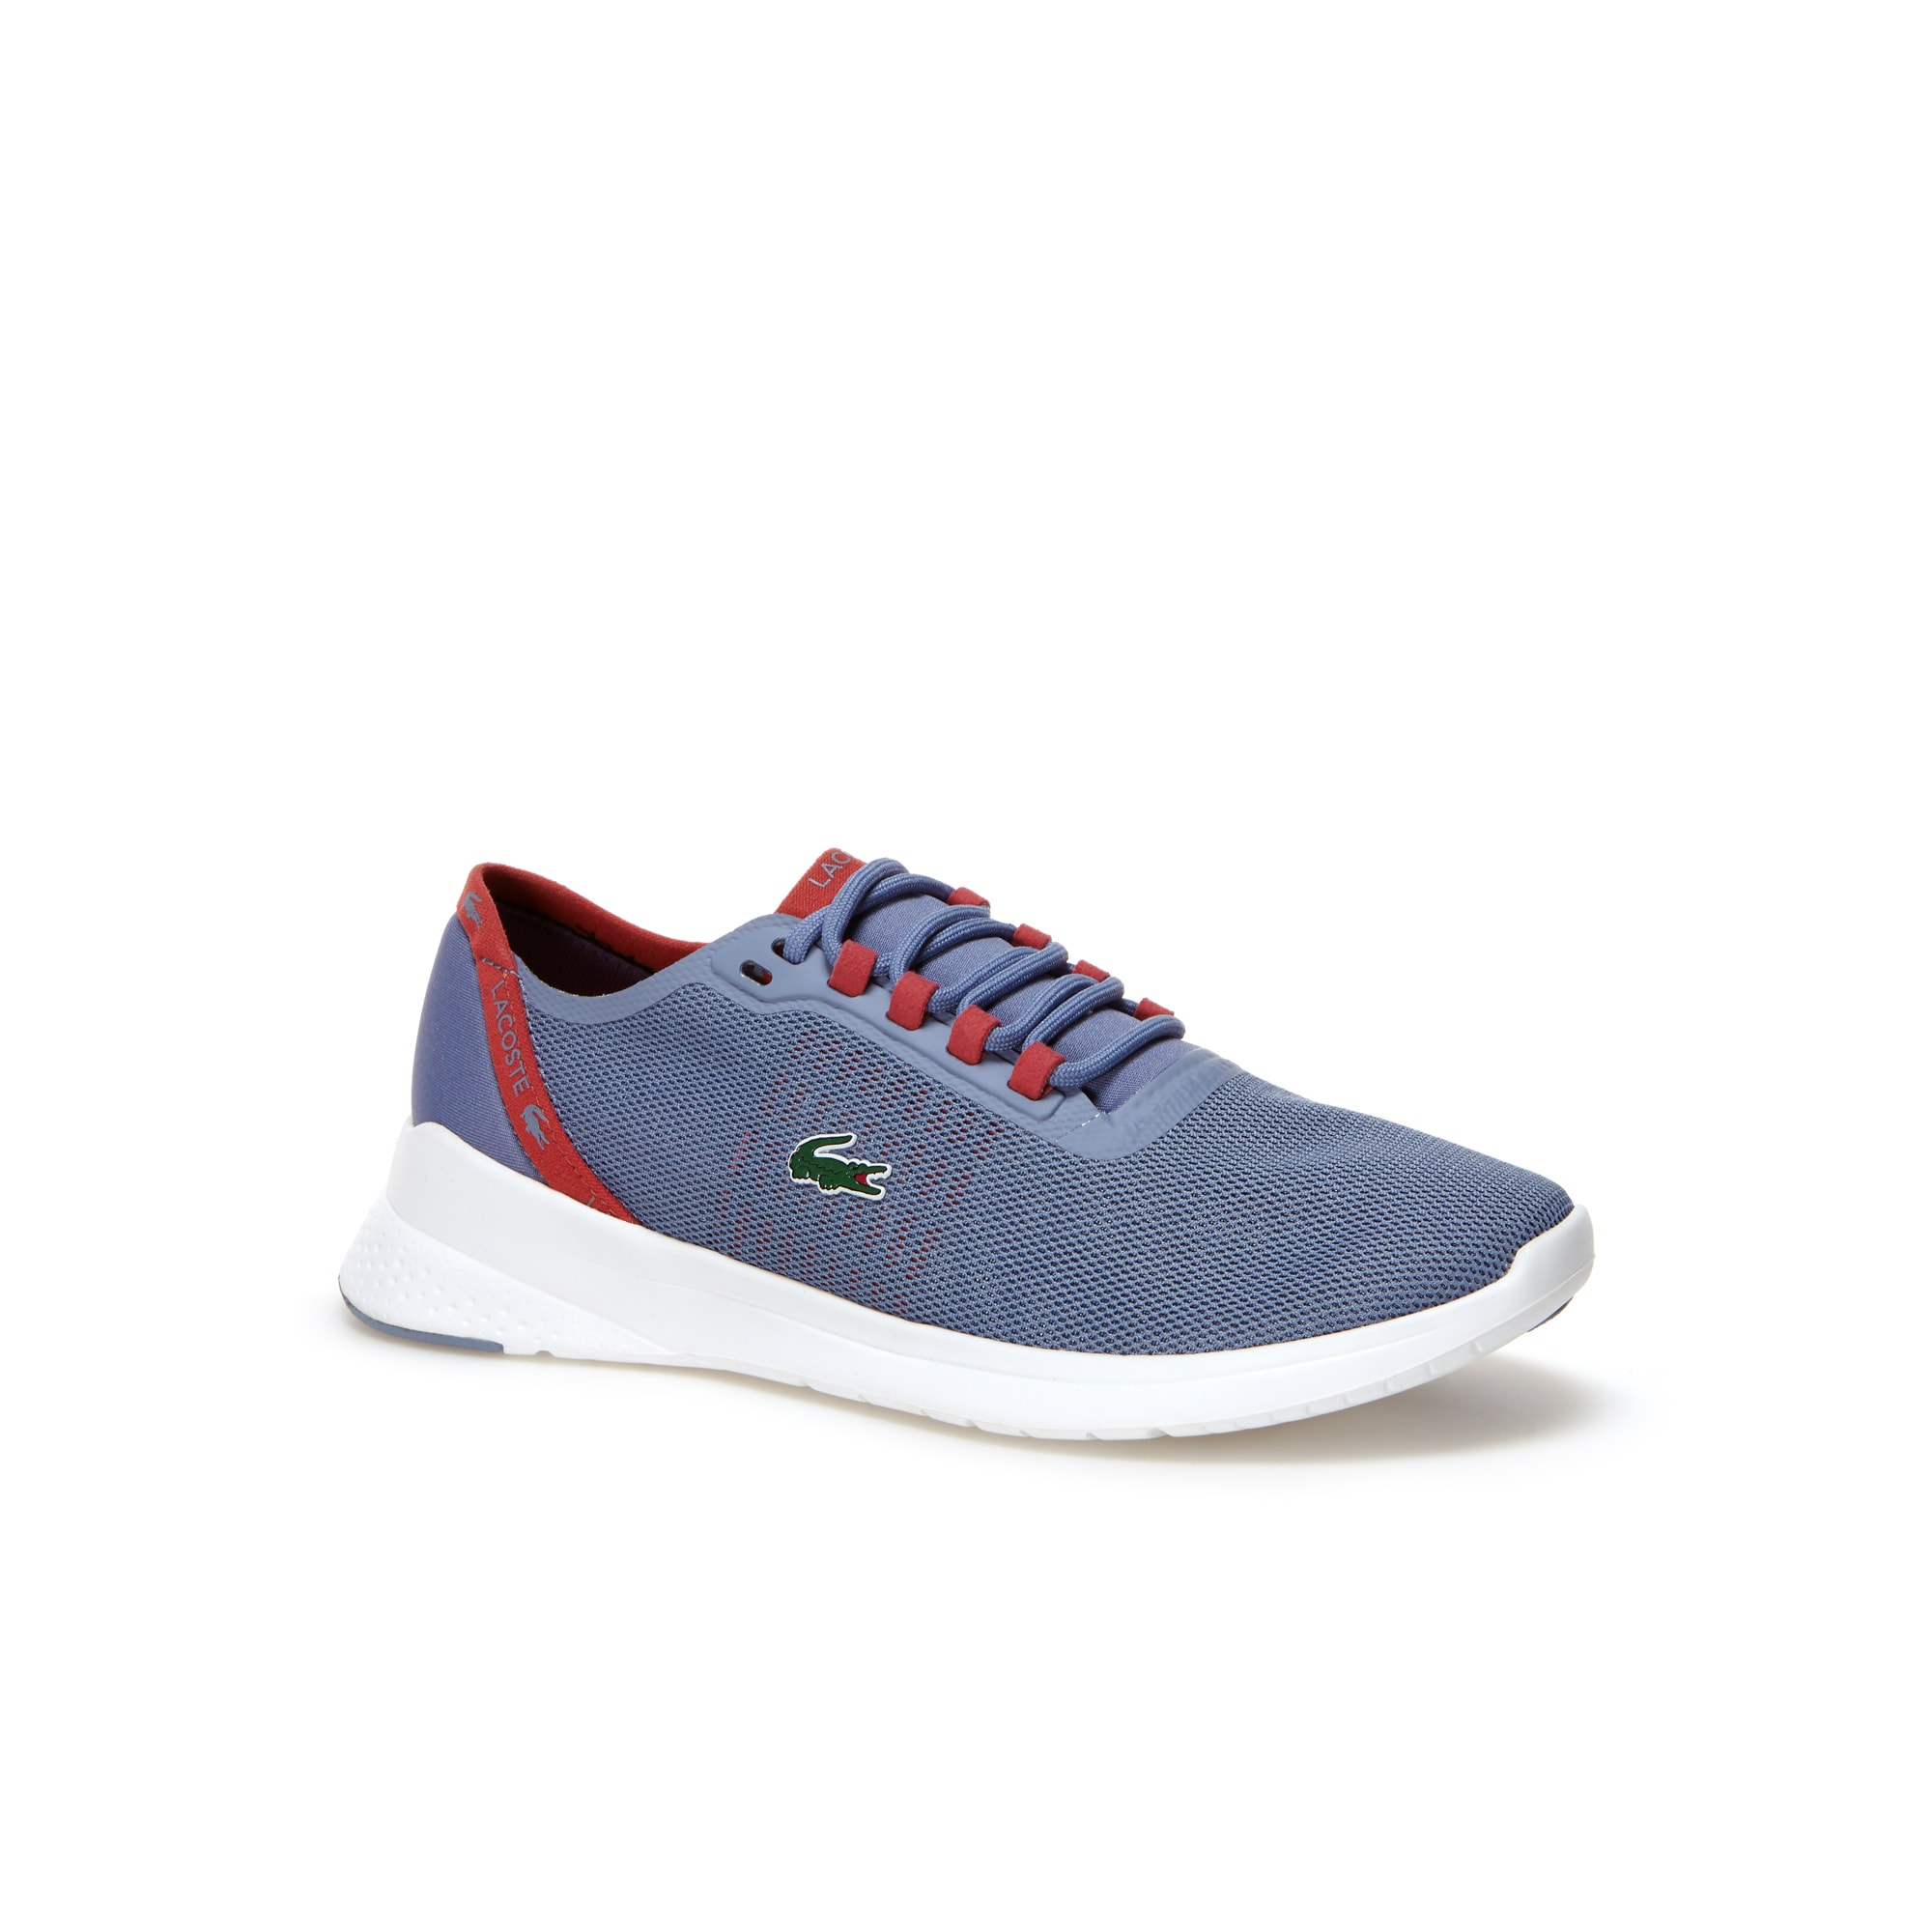 Women's LT Fit Textile Trainers